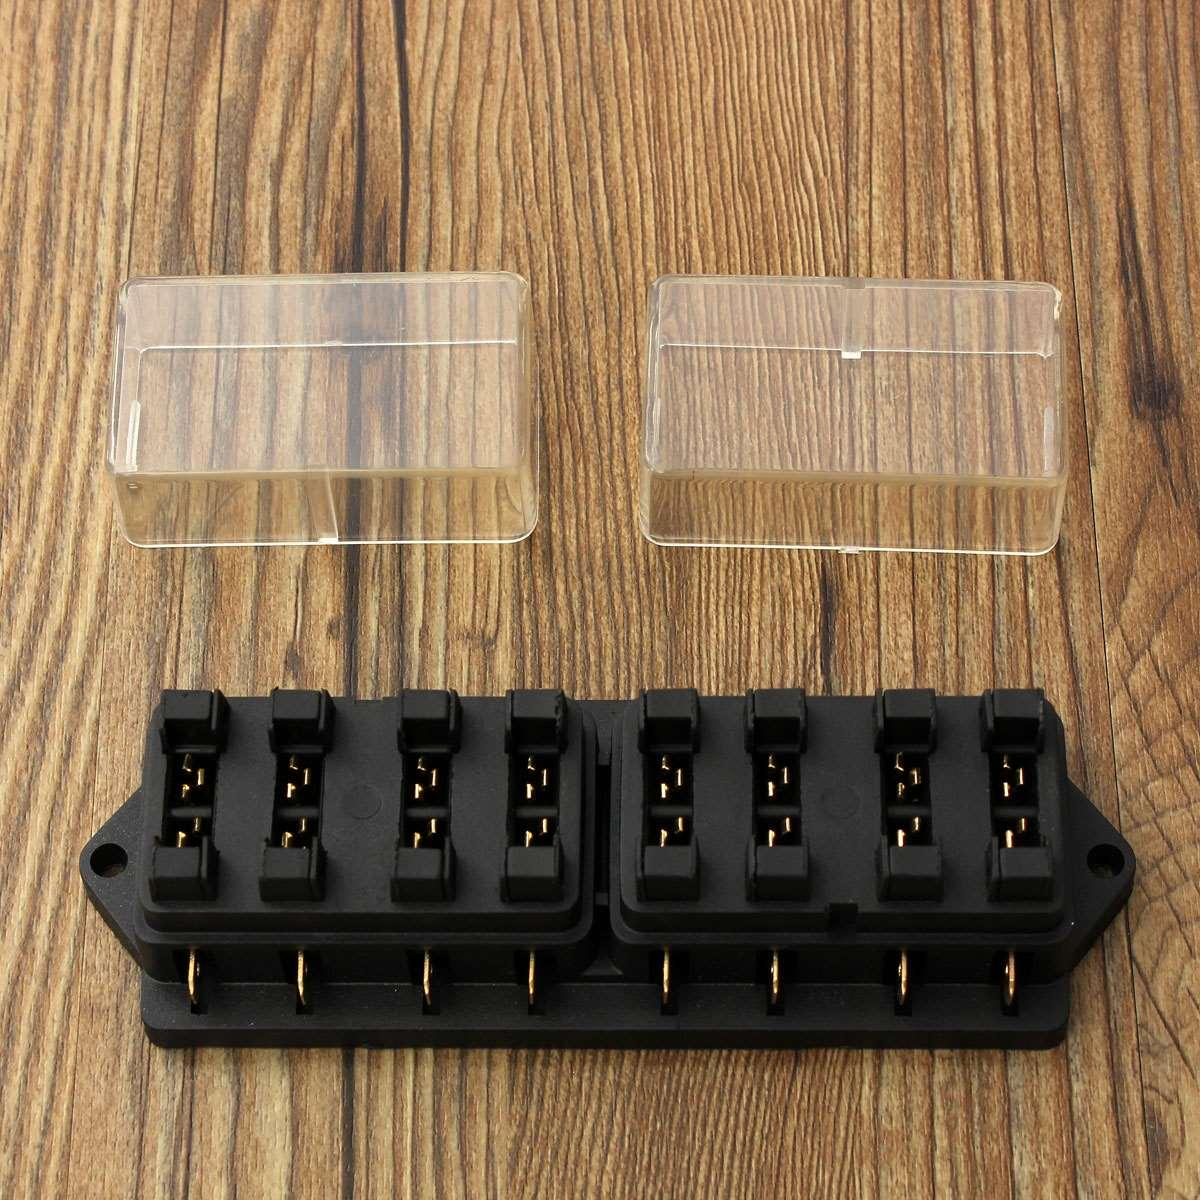 Universal 12v 8way Car Truck Automotive Blade Fuse Box Holder Circuit With Cover Order15 No Tracking